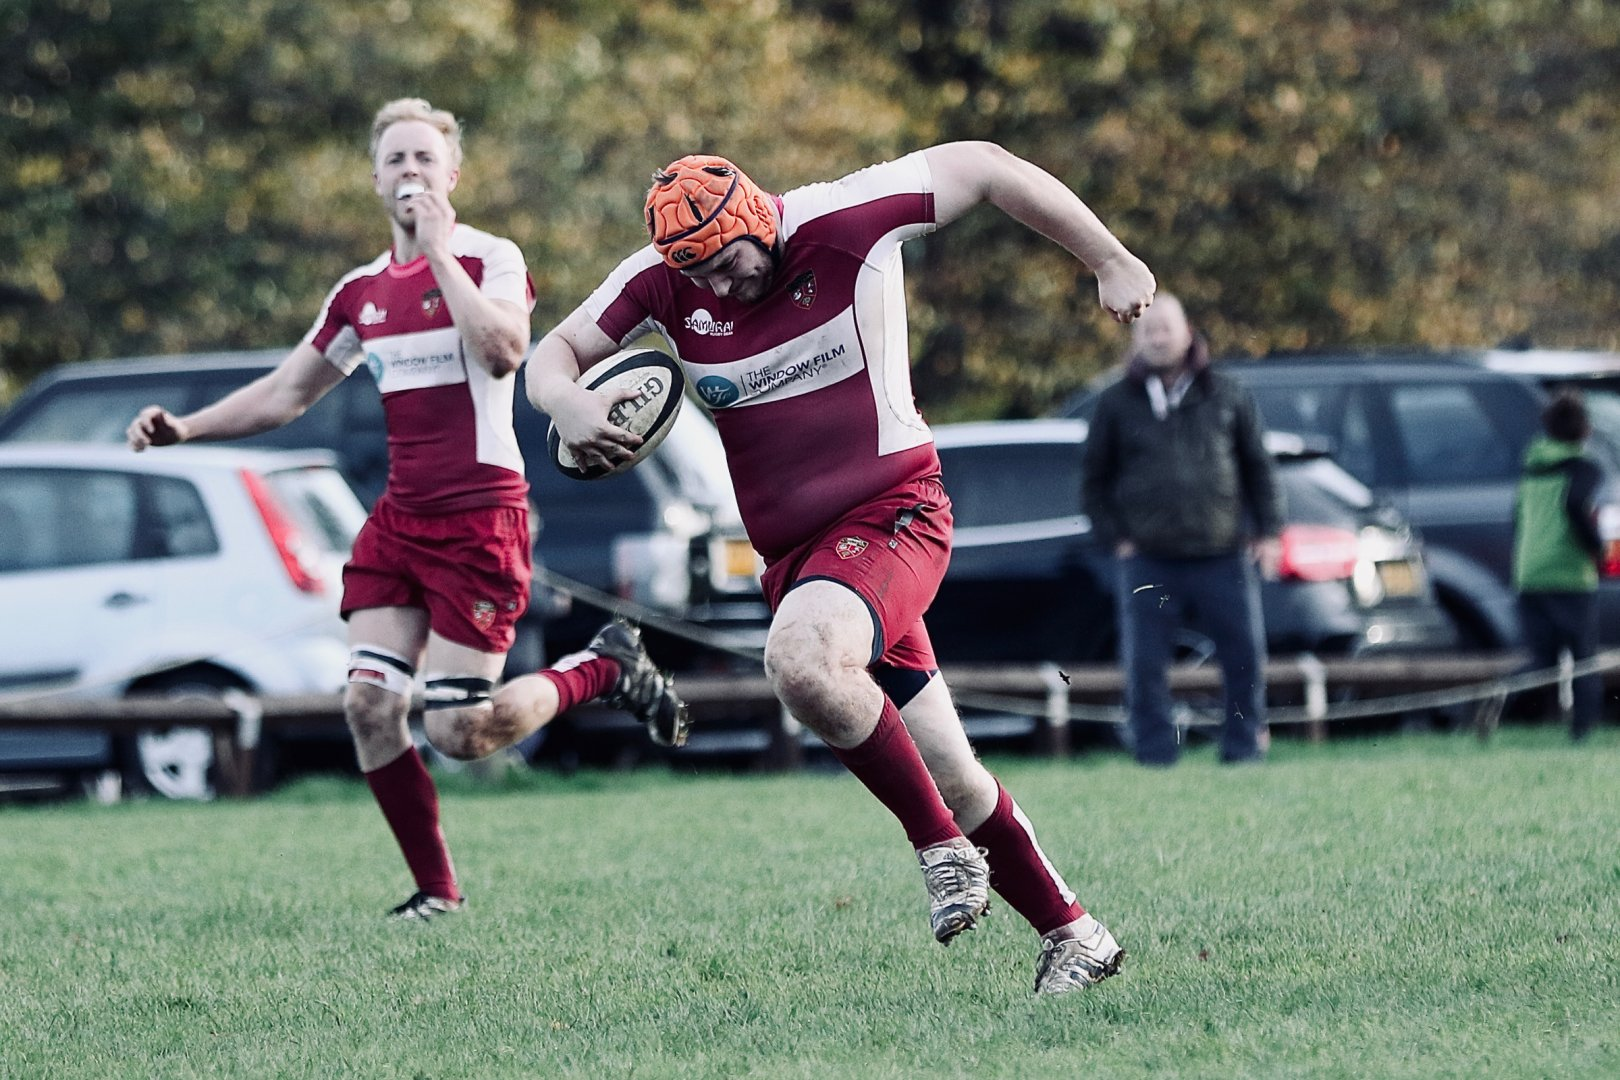 amersham and chiltern rugby